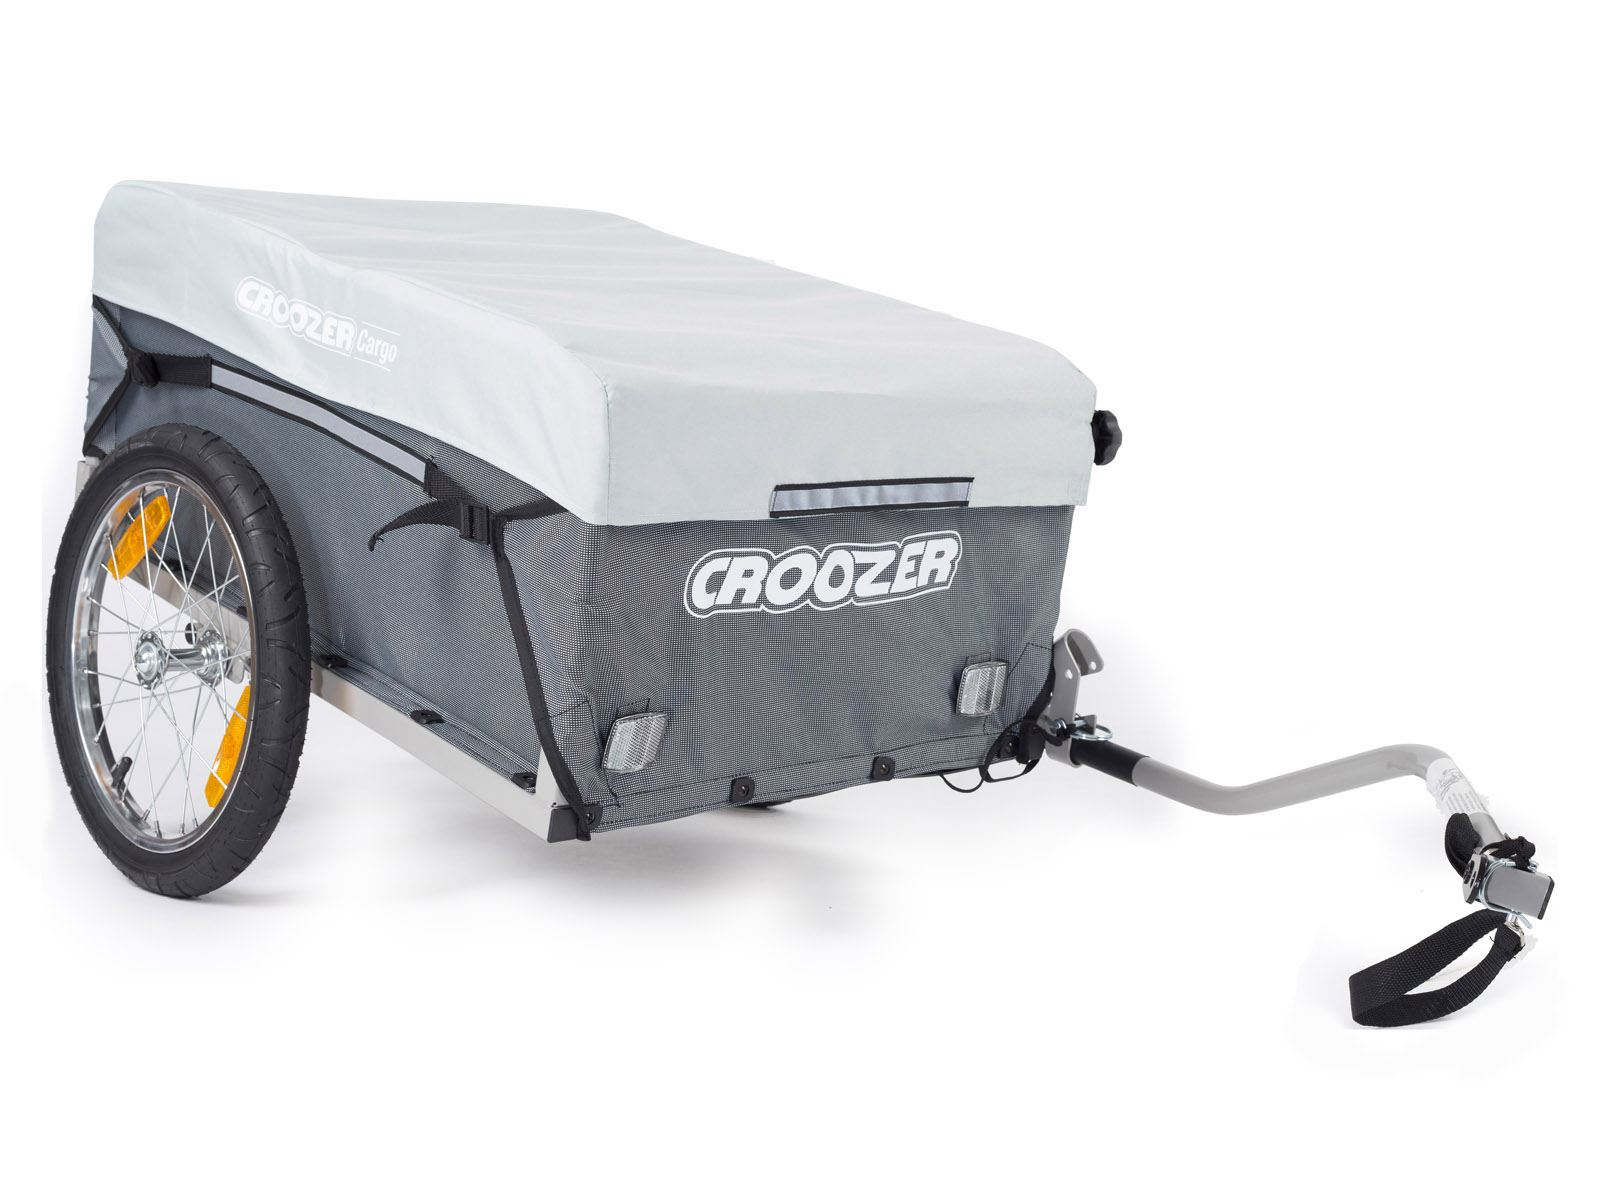 Bike cargo trailer - Croozer Travel